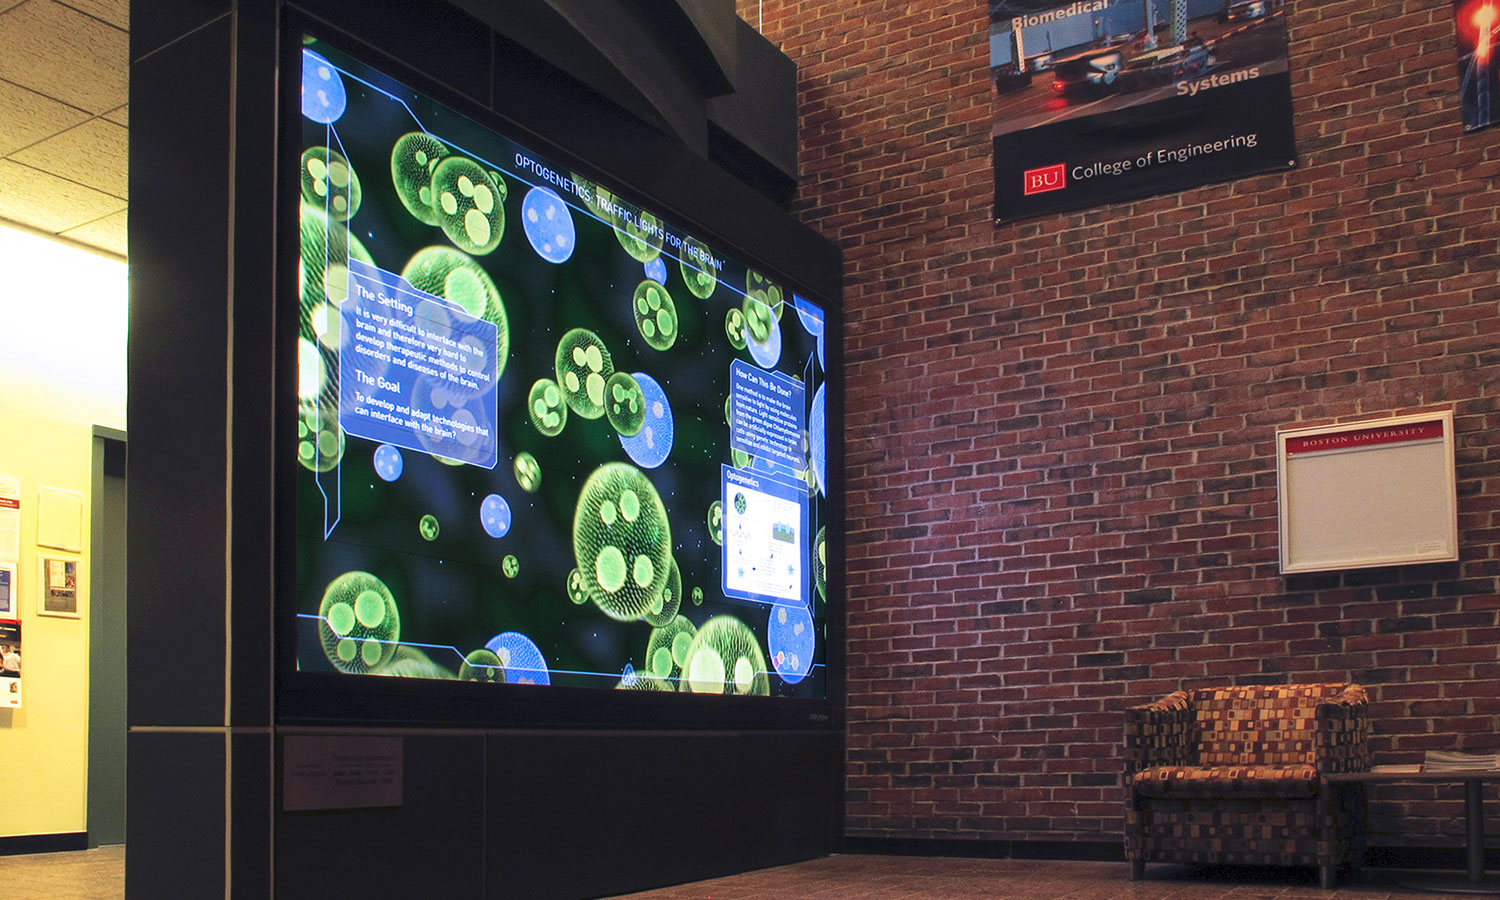 prysm-video-wall-at-boston-university.jpg